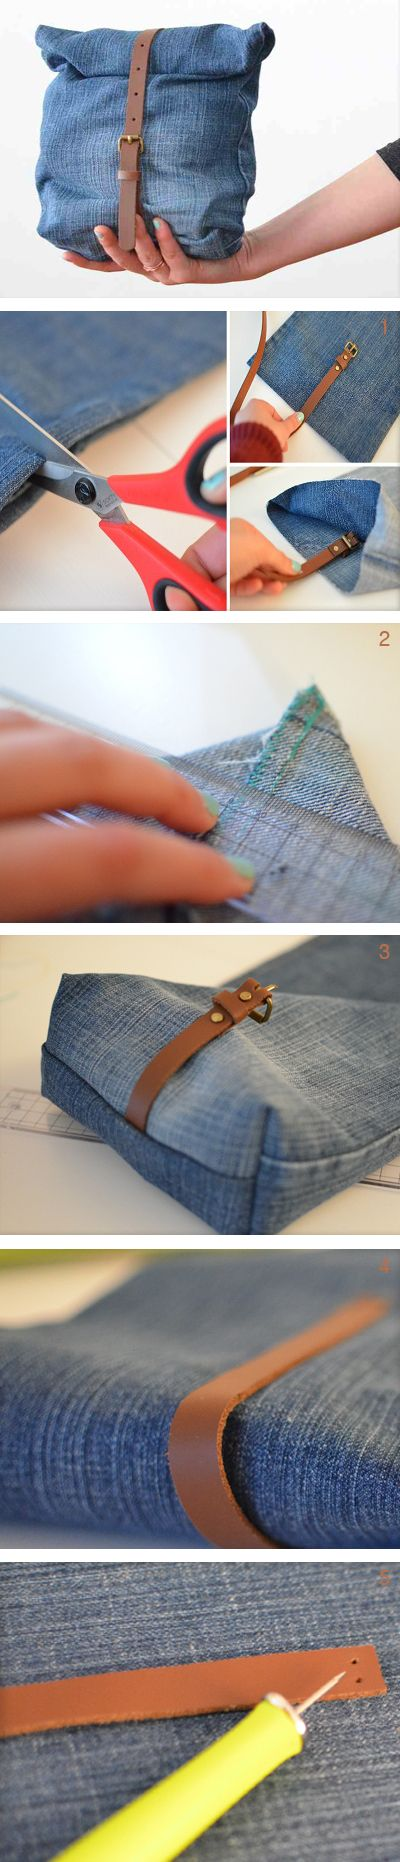 Upcycled Jeans into bags